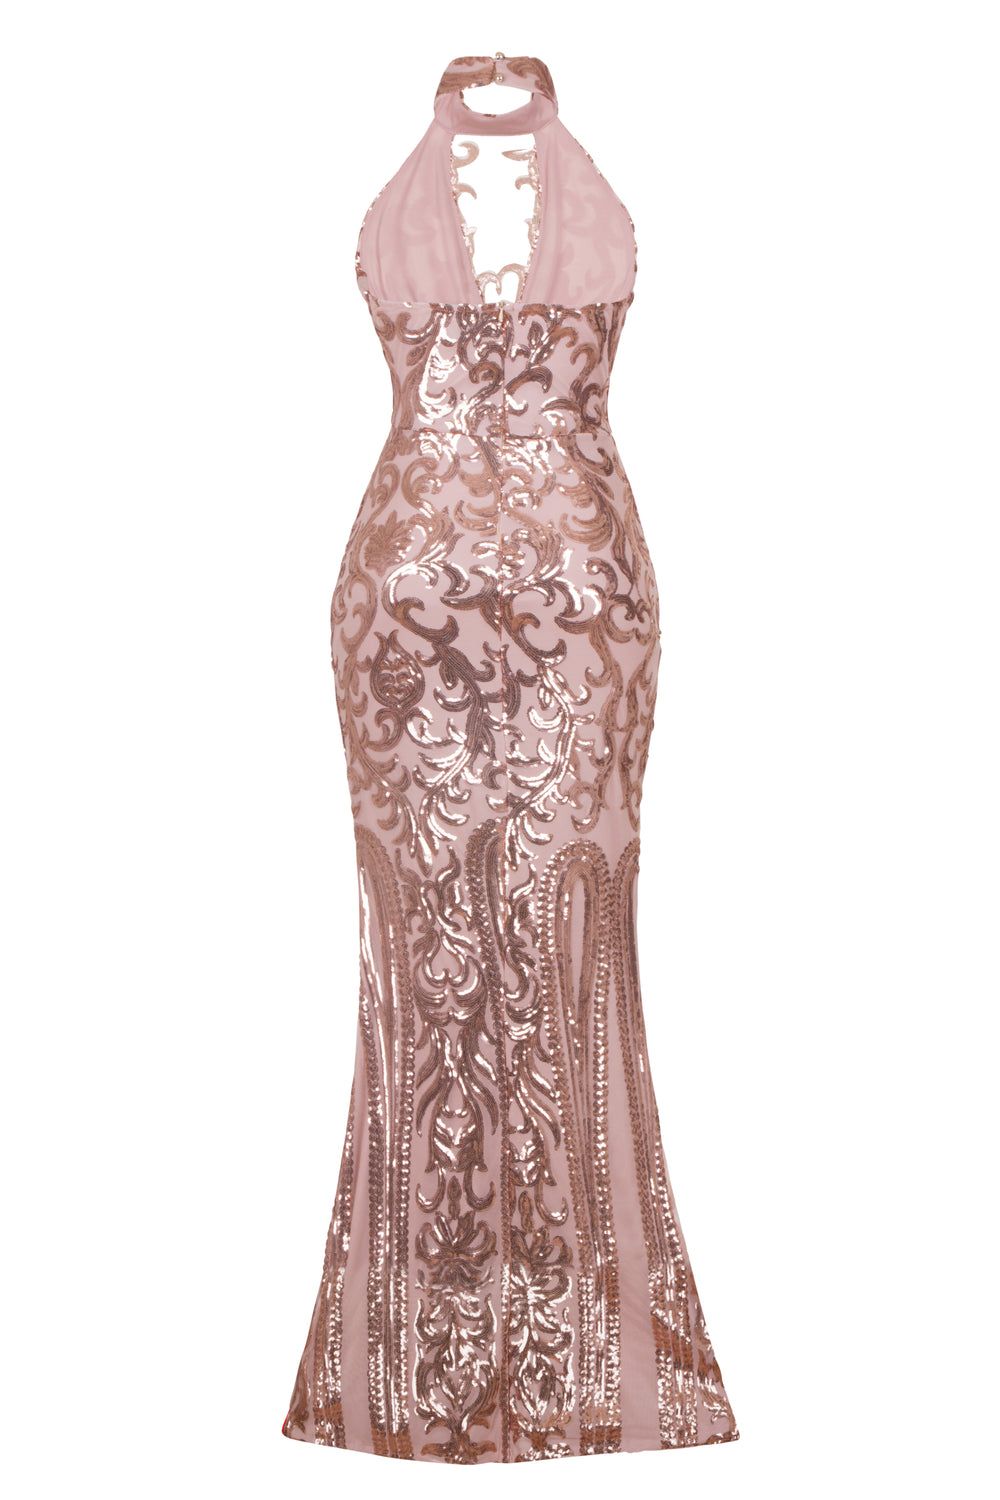 Majesty Luxe Rose Gold Keyhole Victorian Sequin Illusion Maxi Dress